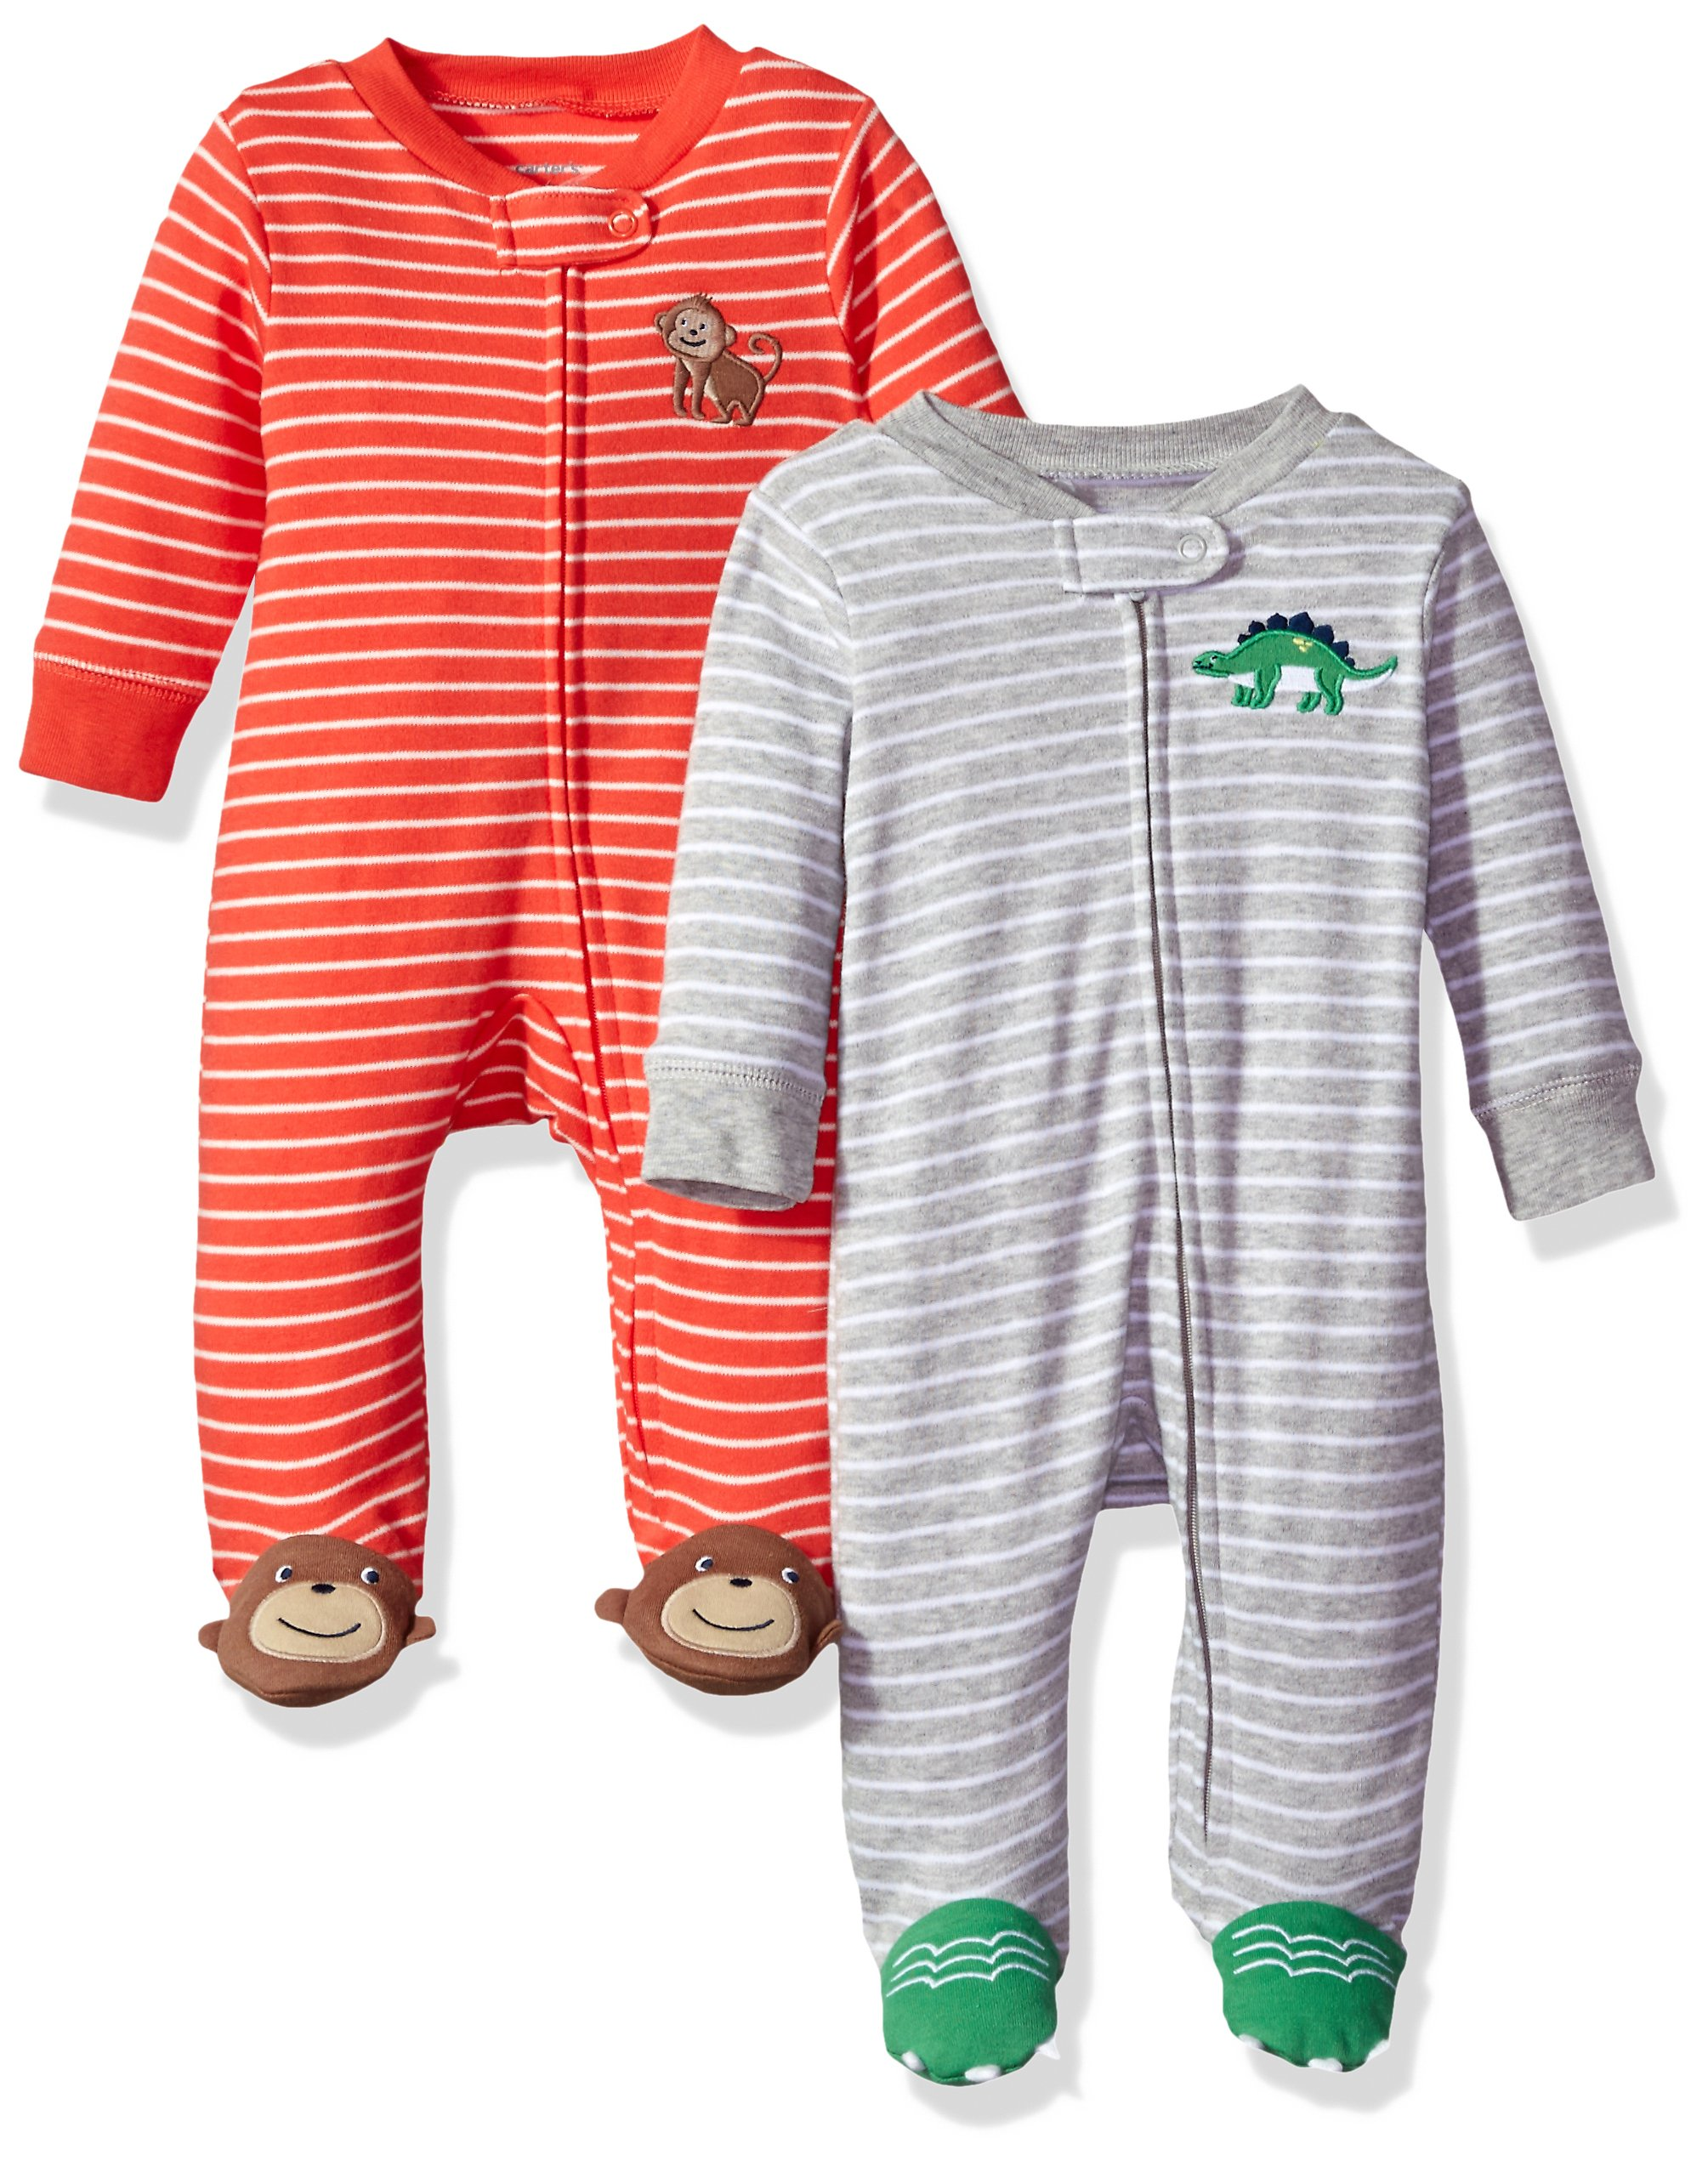 Carter's Baby Boys' 2-Pack Cotton Sleep and Play, Dino/Monkey, 6 Months